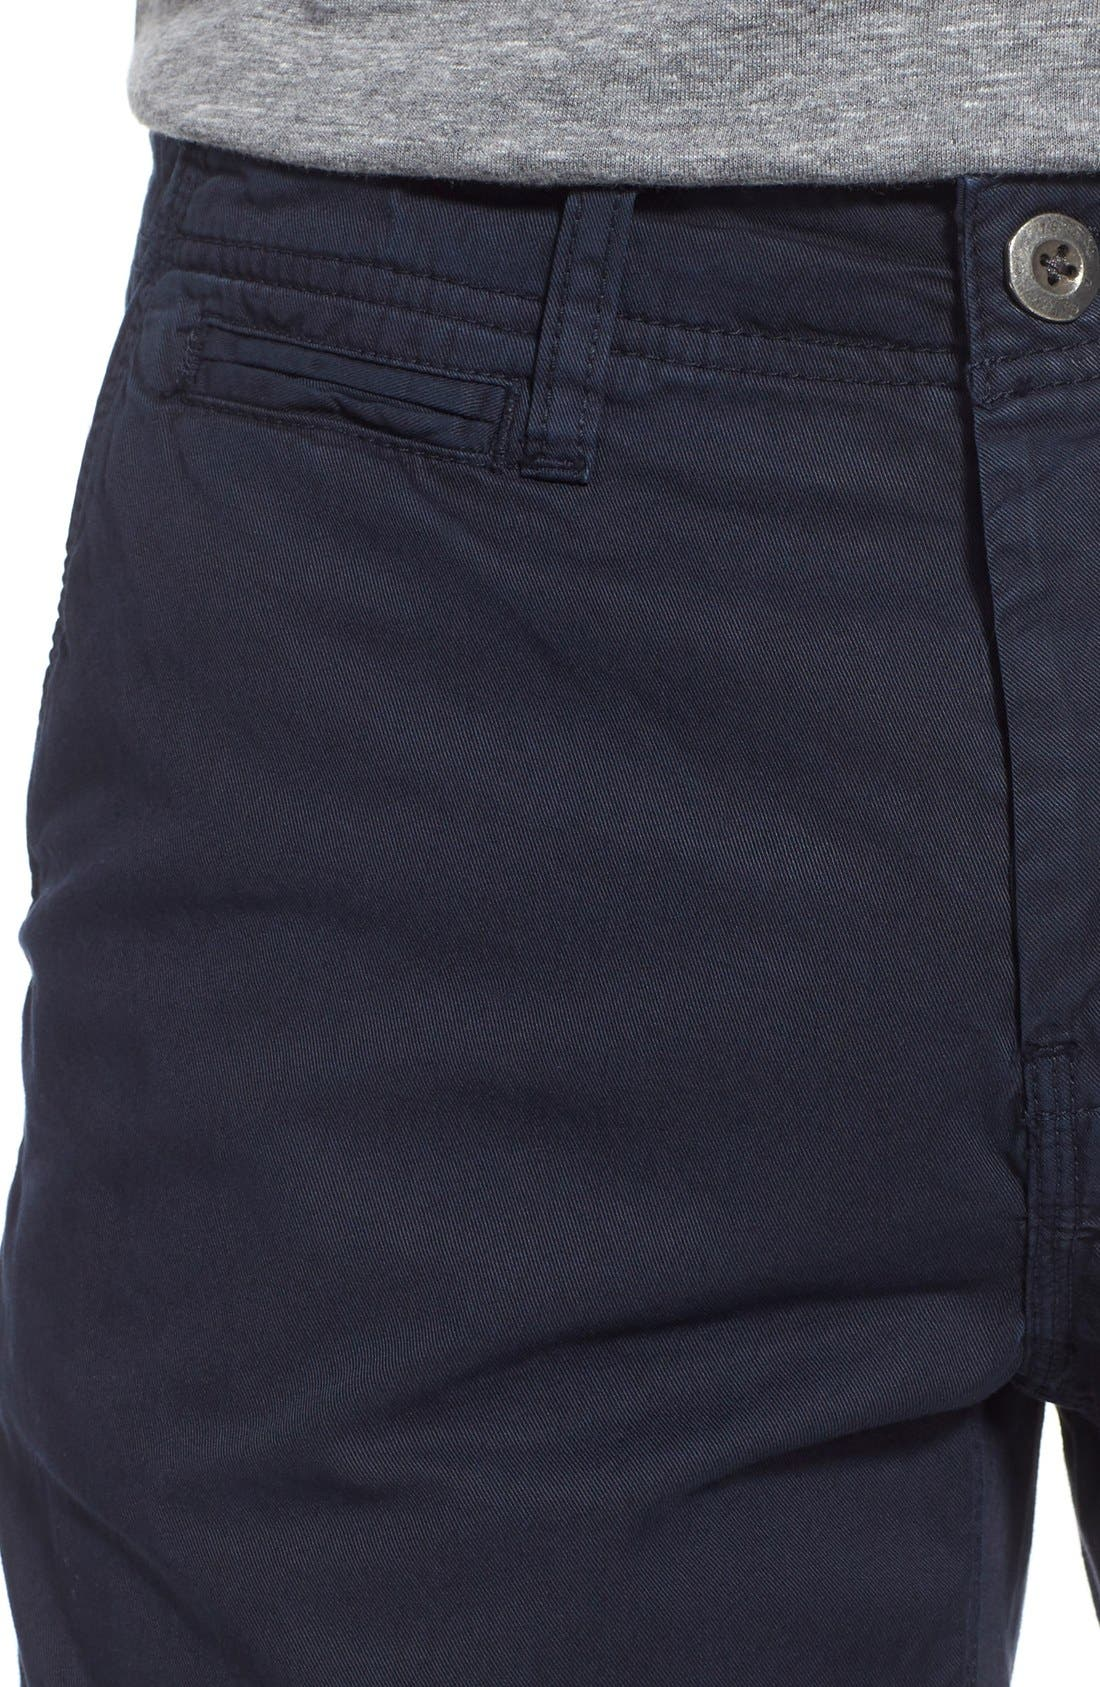 'Napa' Chino Shorts,                             Alternate thumbnail 50, color,